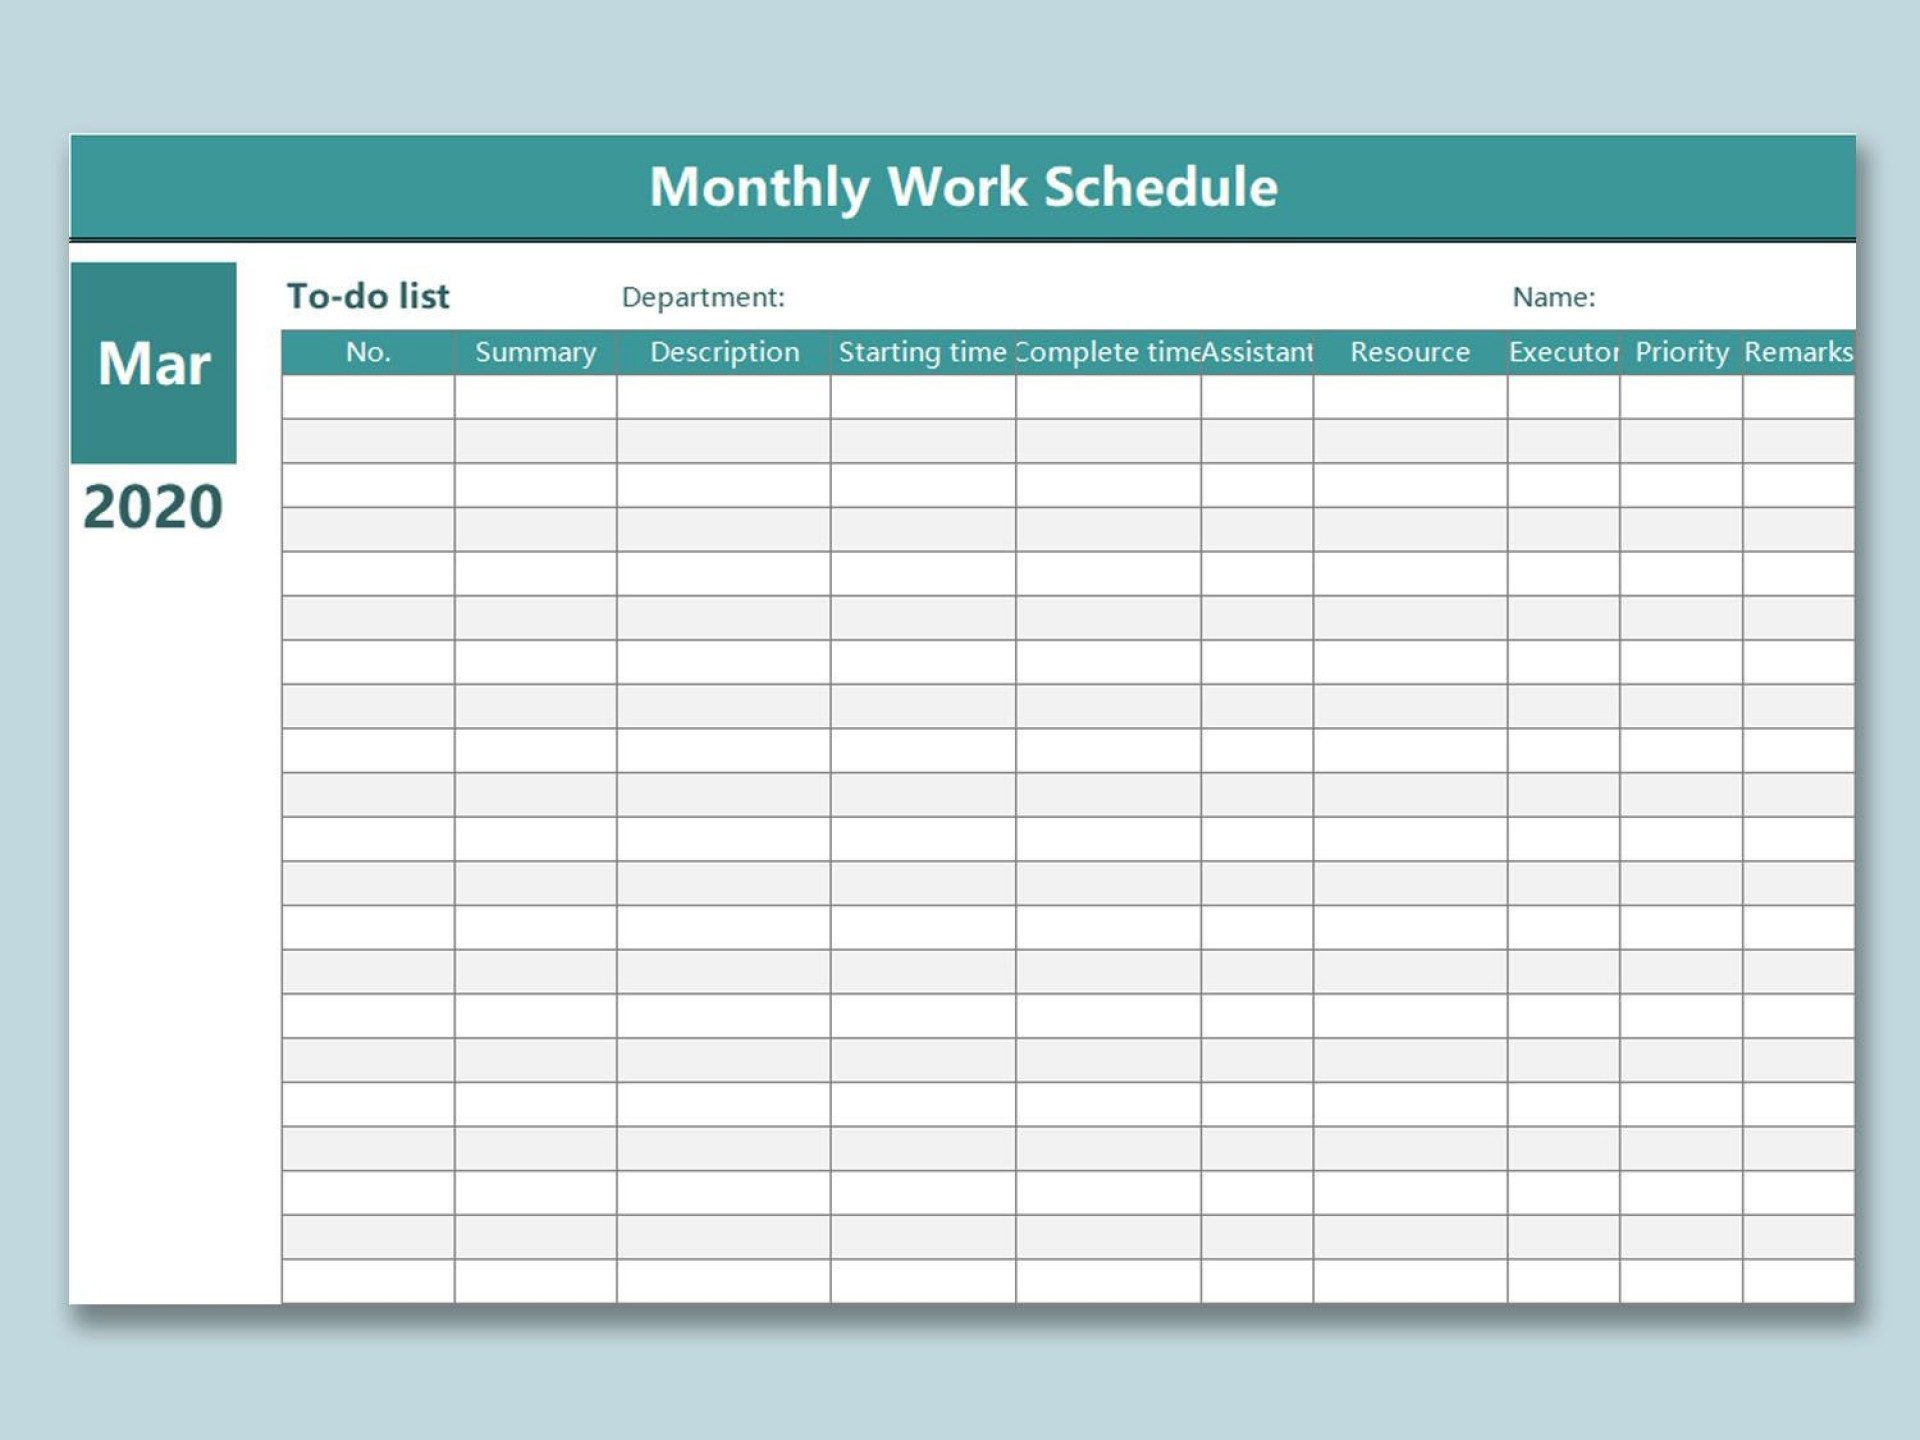 004 Shocking Free Employee Scheduling Template High Resolution  Templates Weekly Work Schedule Printable Lunch1920